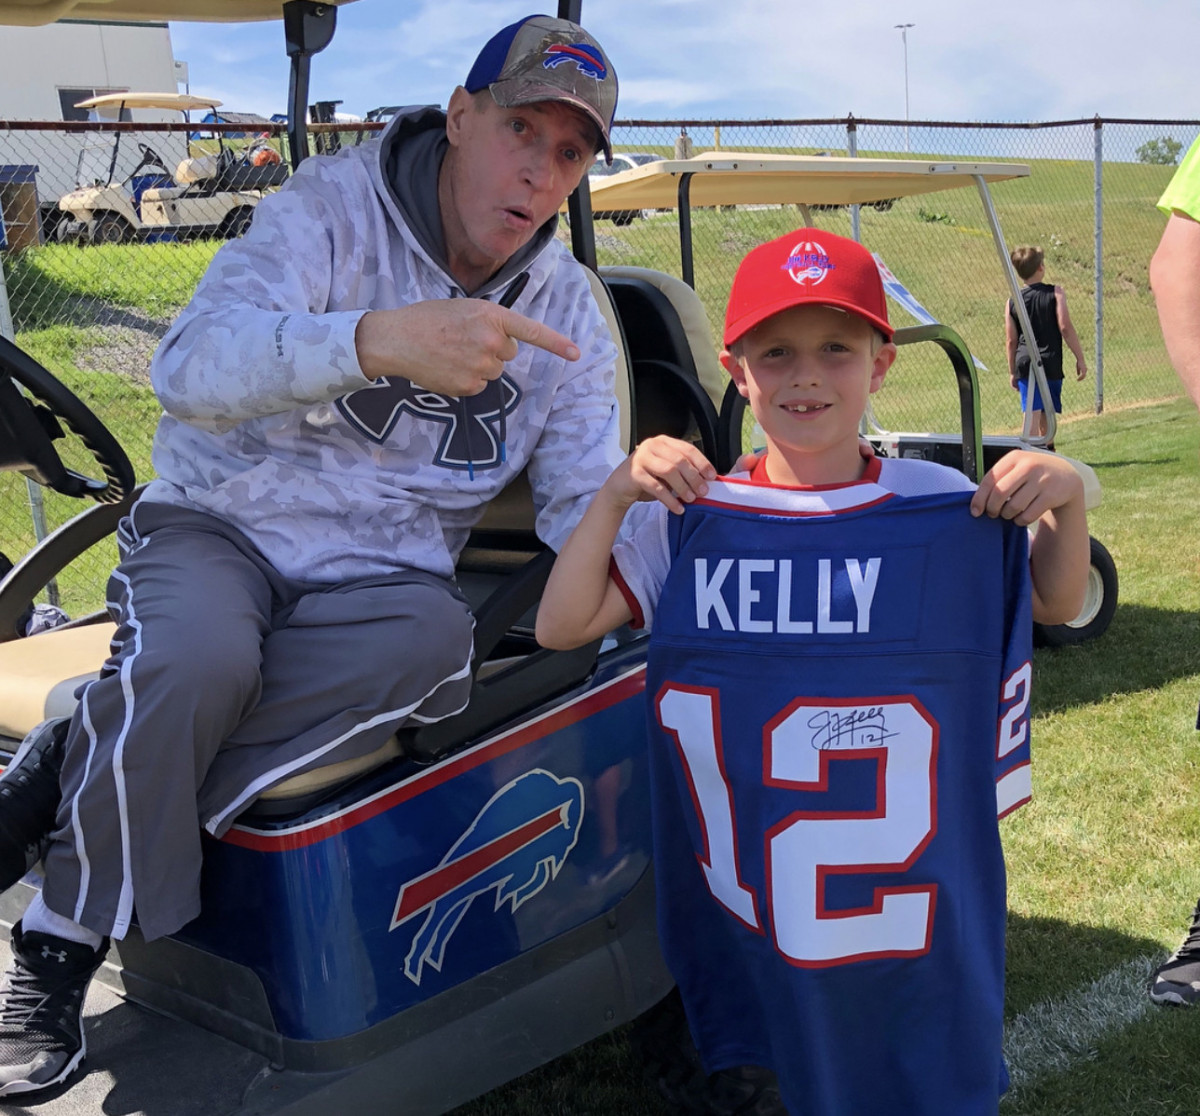 Hall of Fame QB Jim Kelly To Have Cancer Checkup After 'Something Came Up' - Hall of Fame QB Jim Kelly to have cancer checkup after 'something came up'